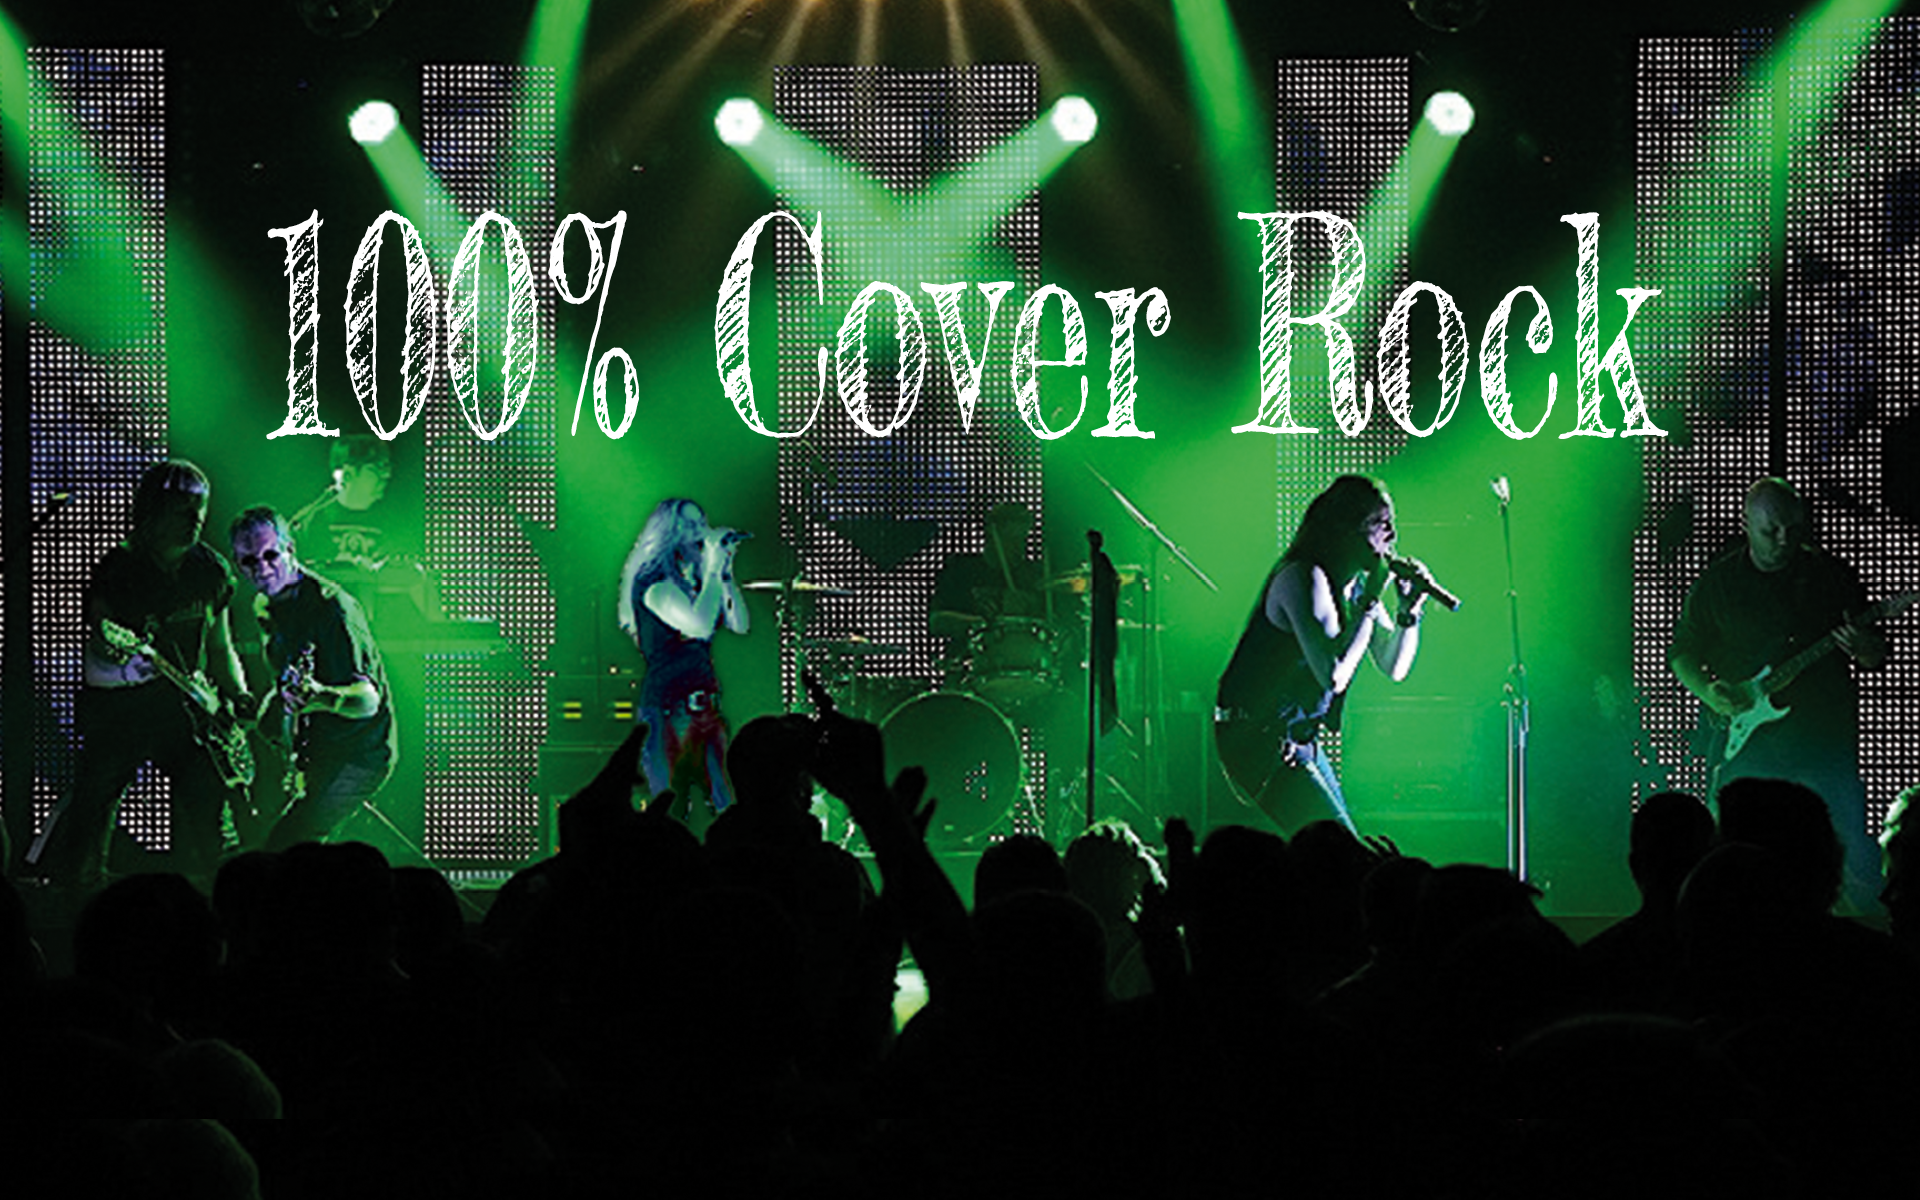 100% Cover Rock